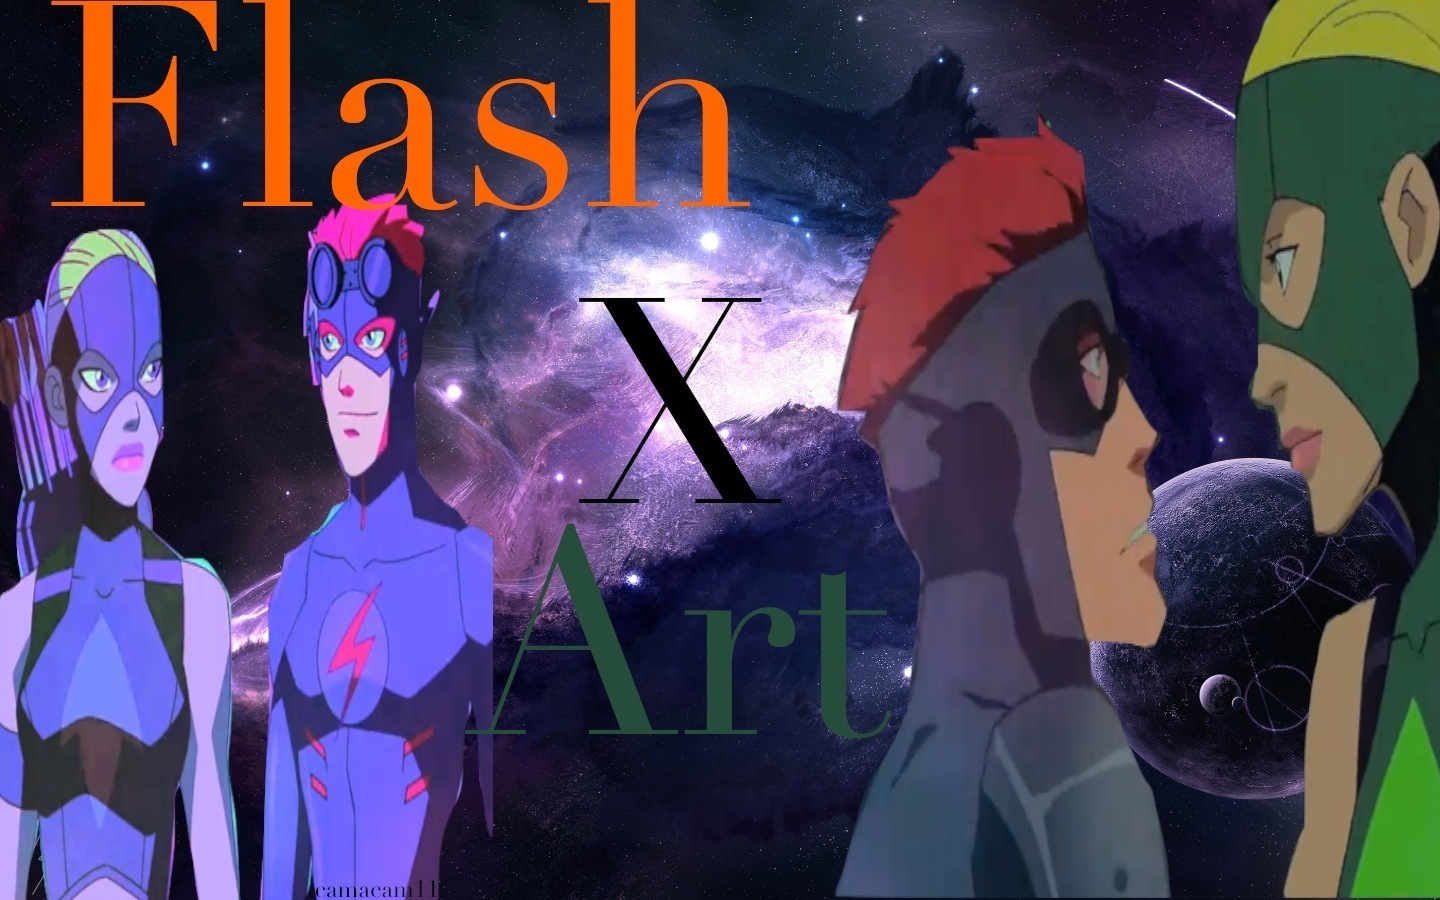 Kid flash young justice